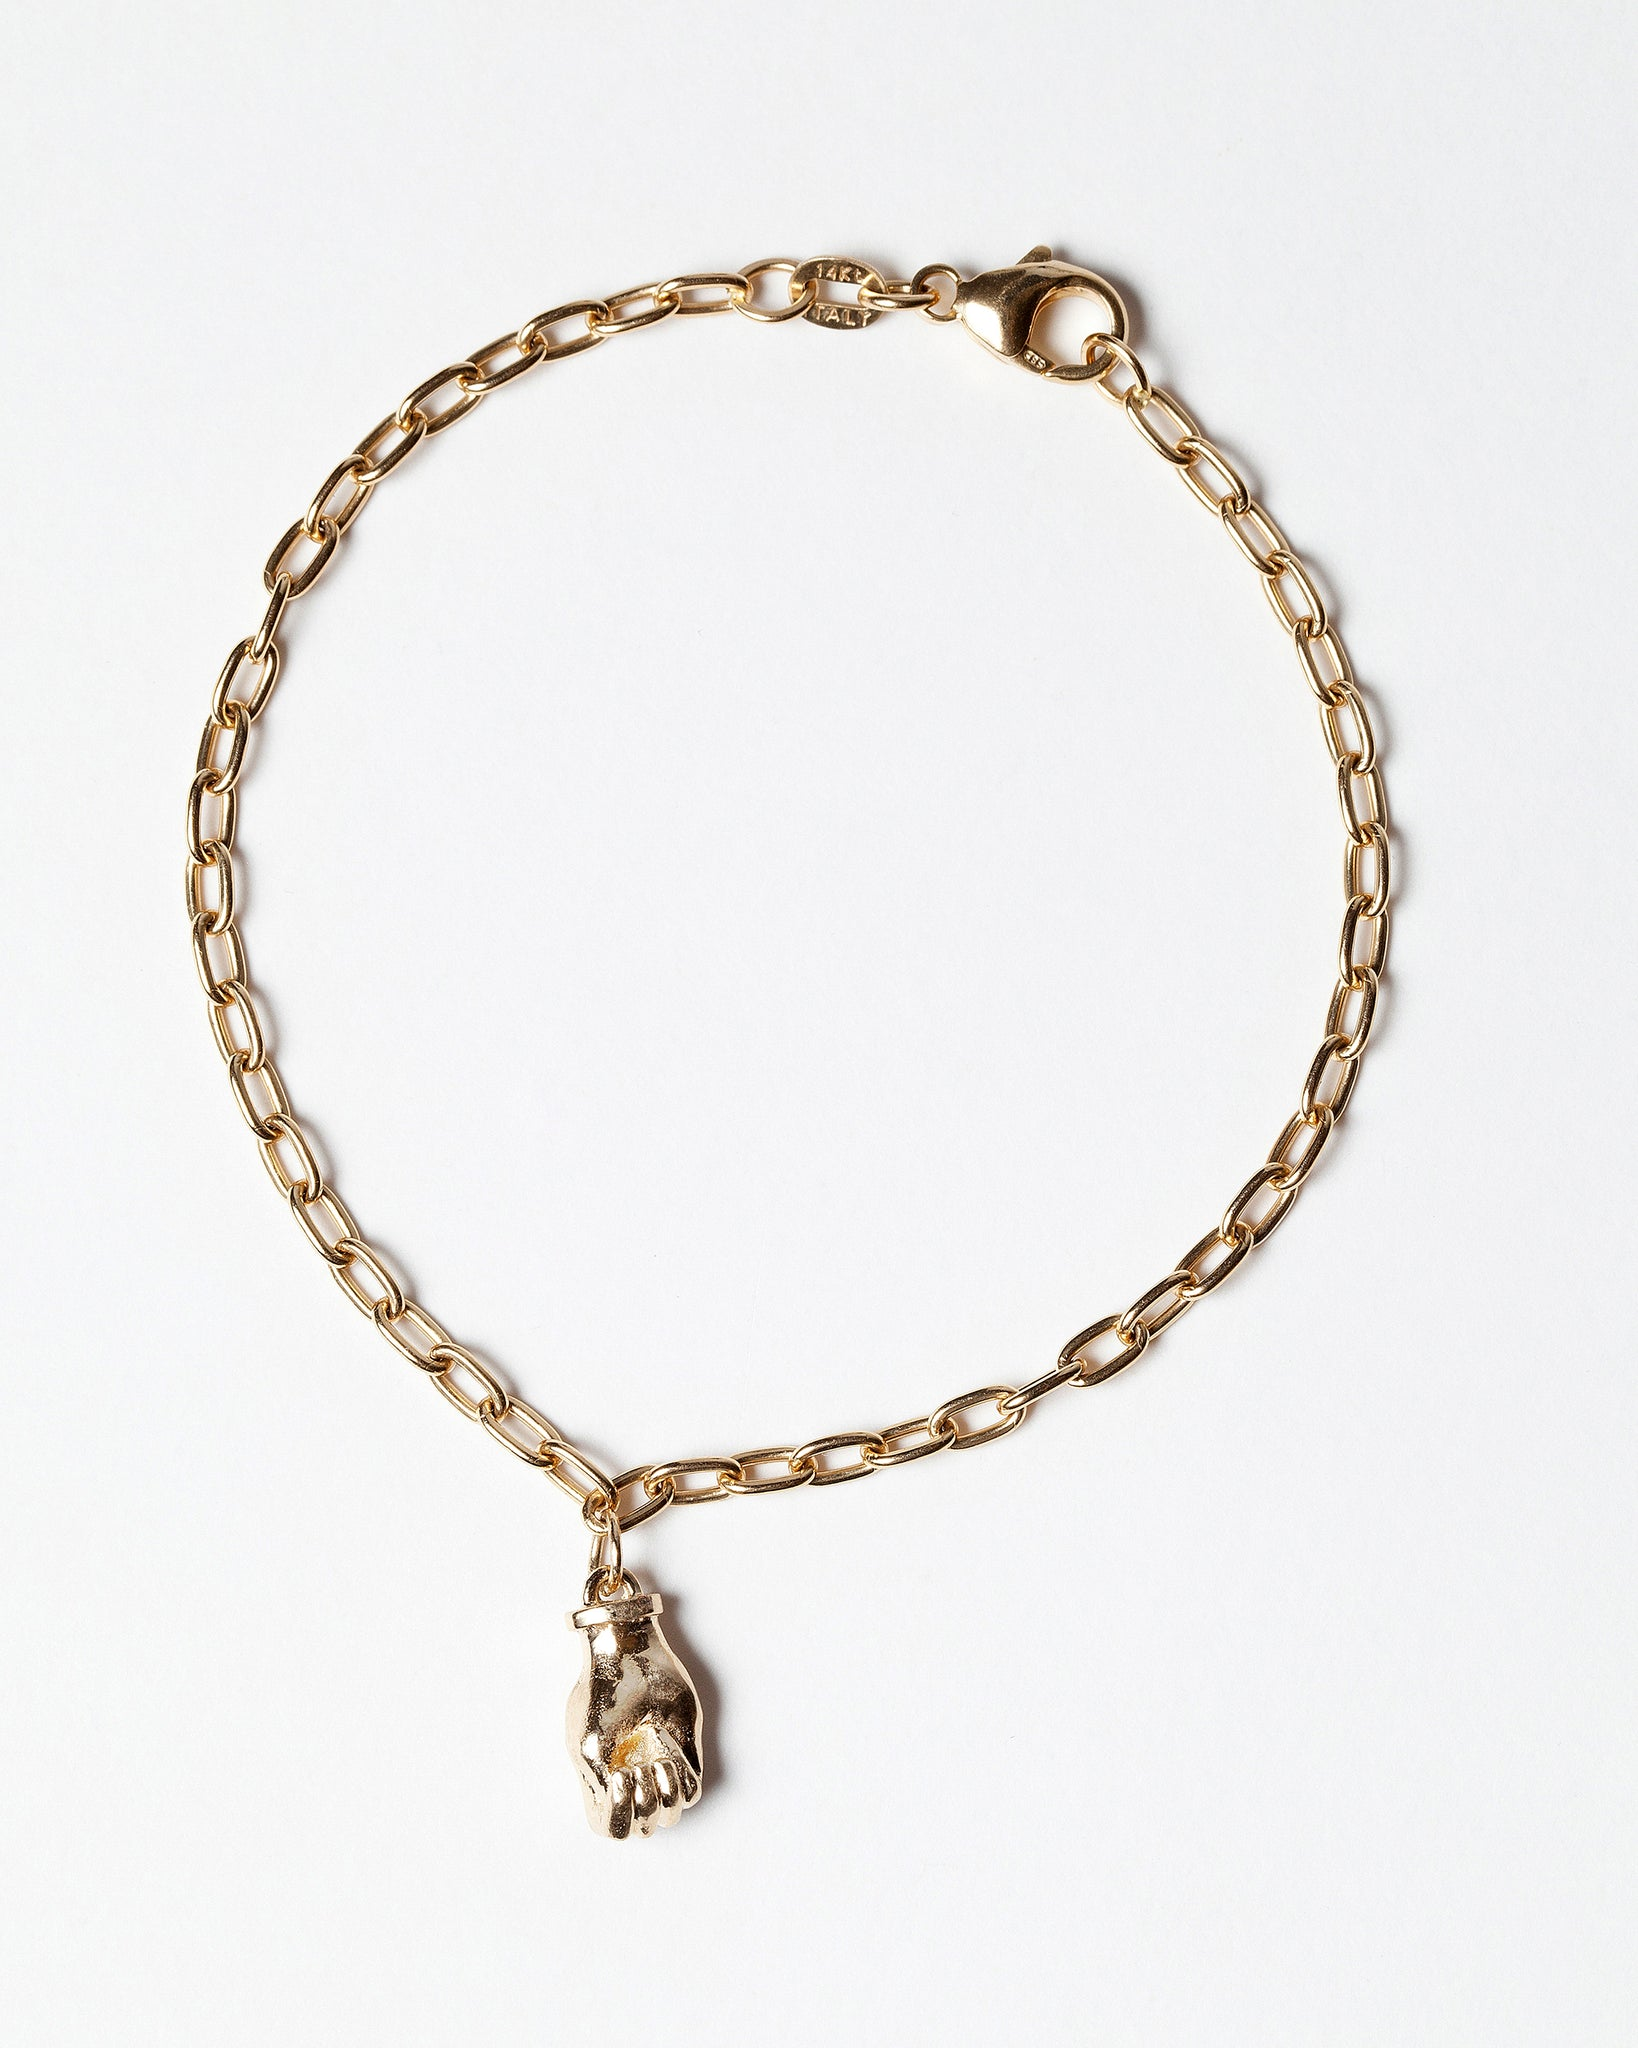 Sign Language Letter M Charm on Chain Bracelet